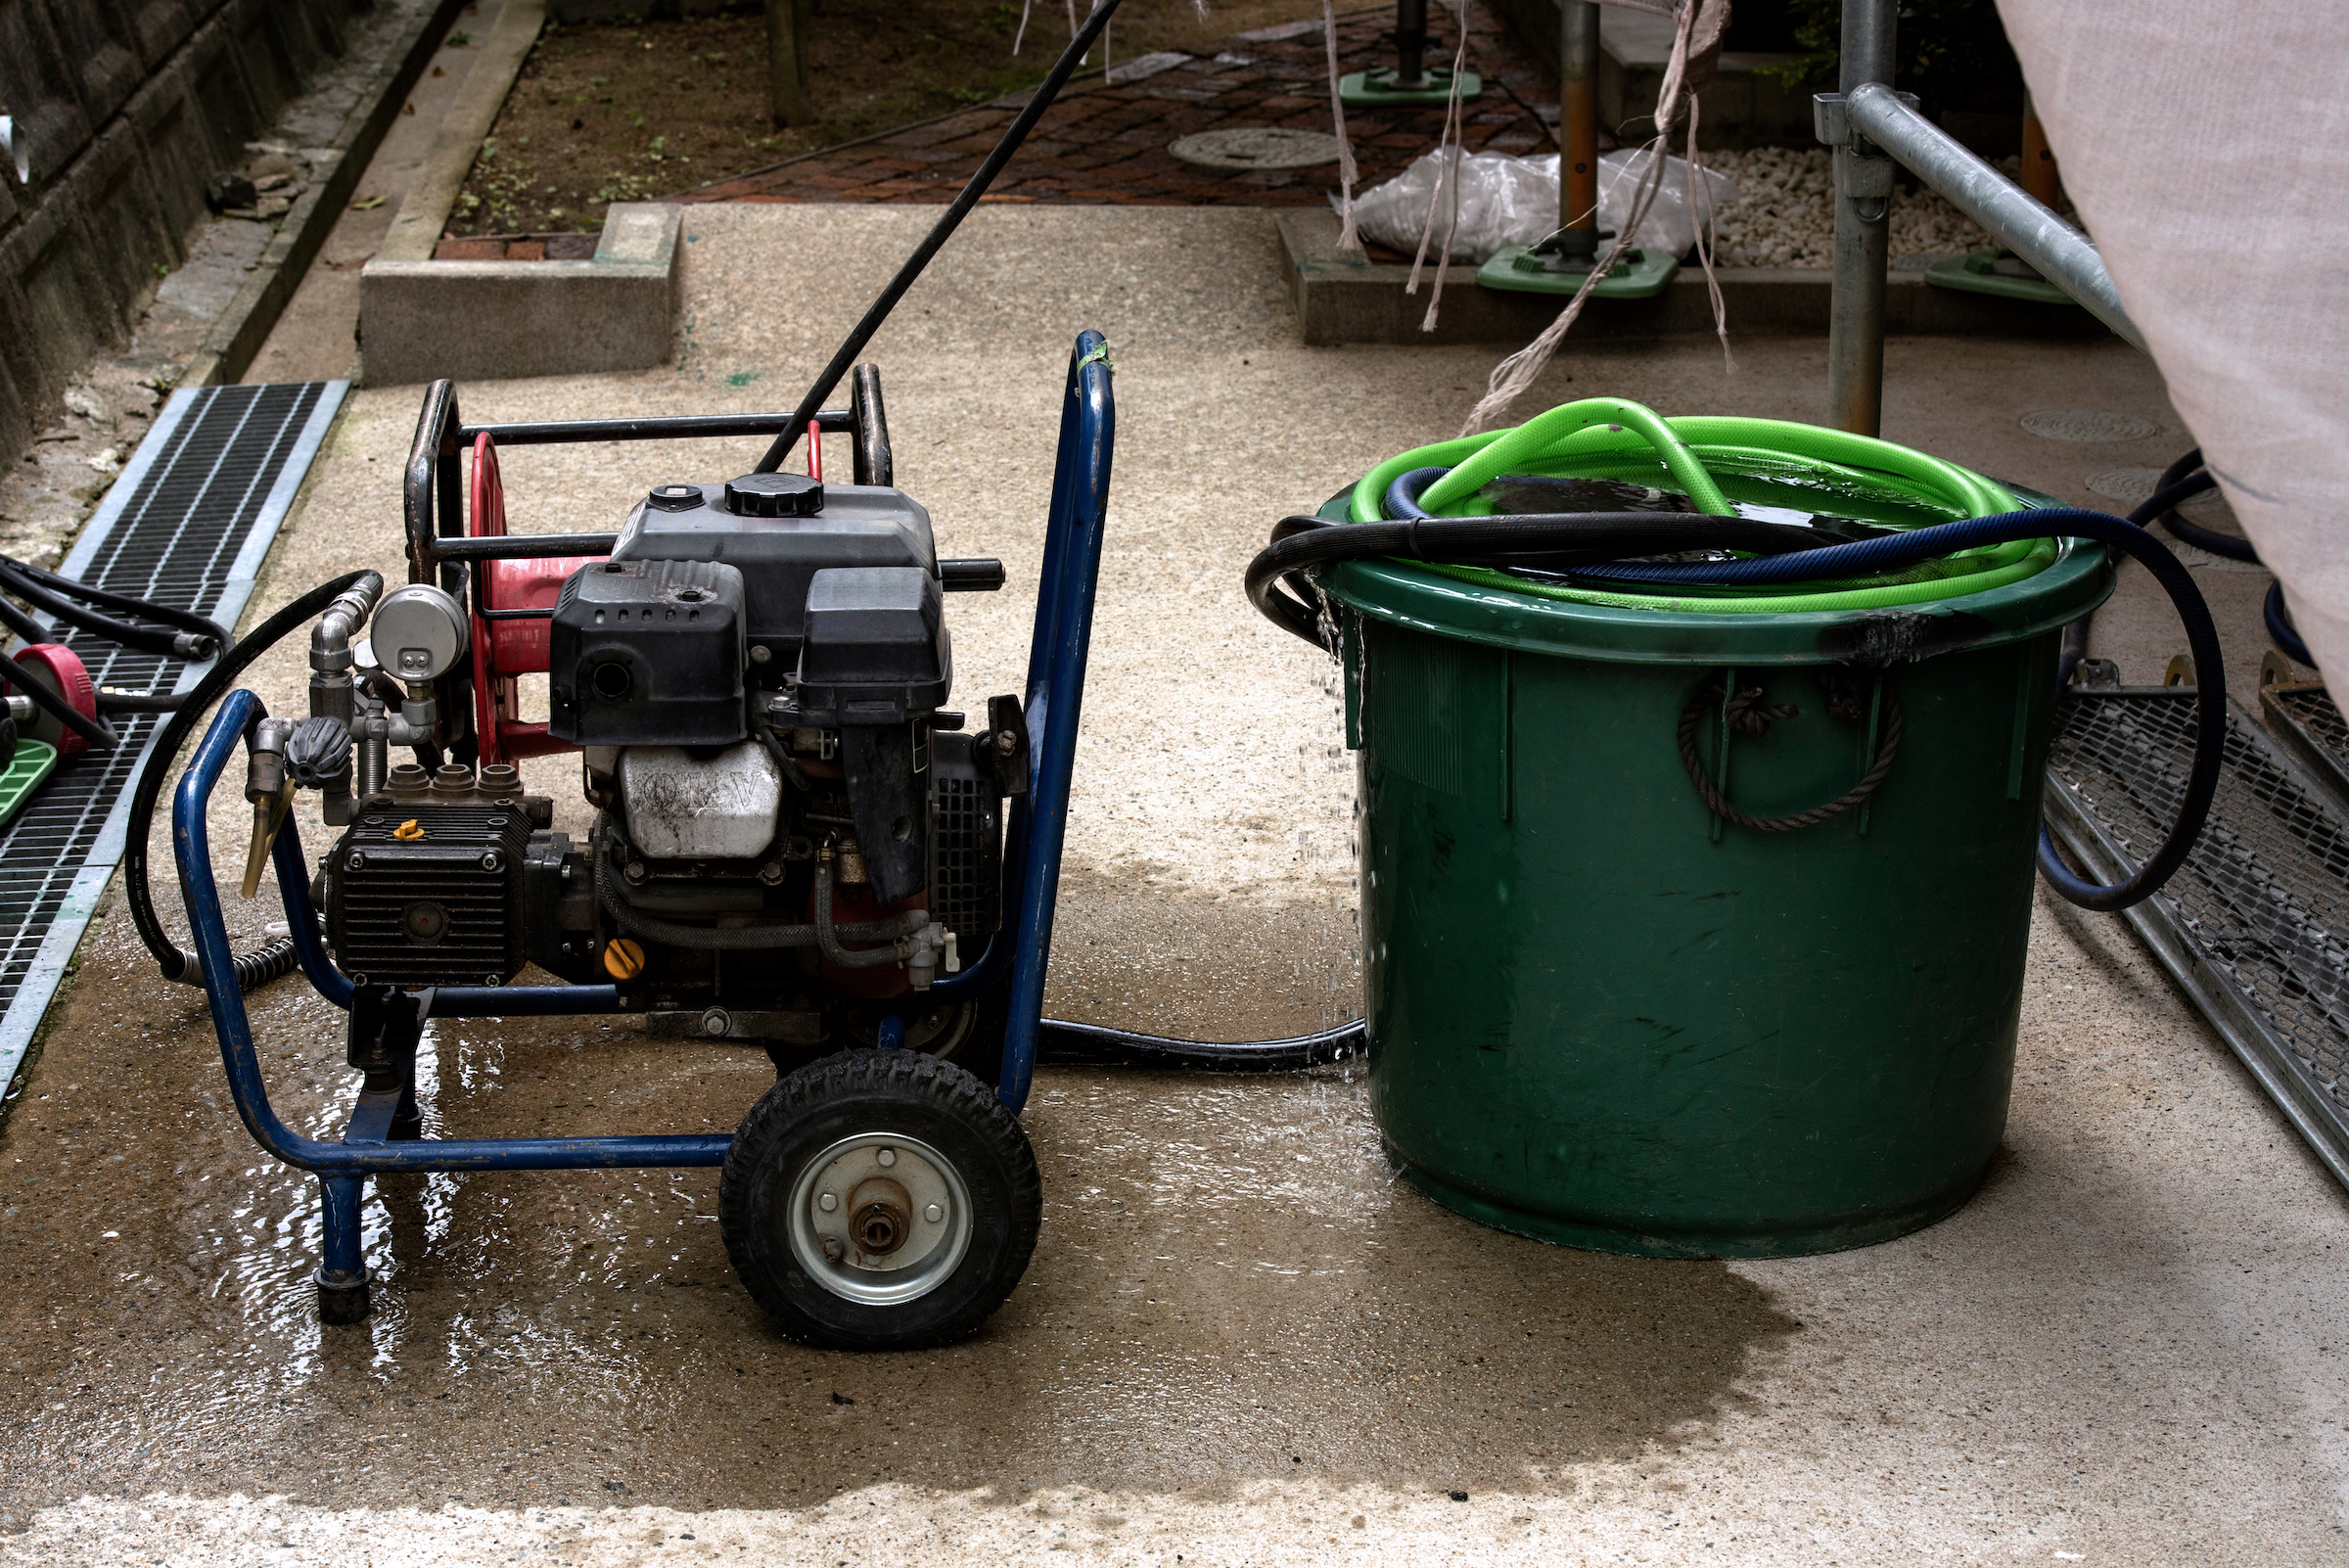 How to pressure wash a house: should you use a gas or electric pressure washer?